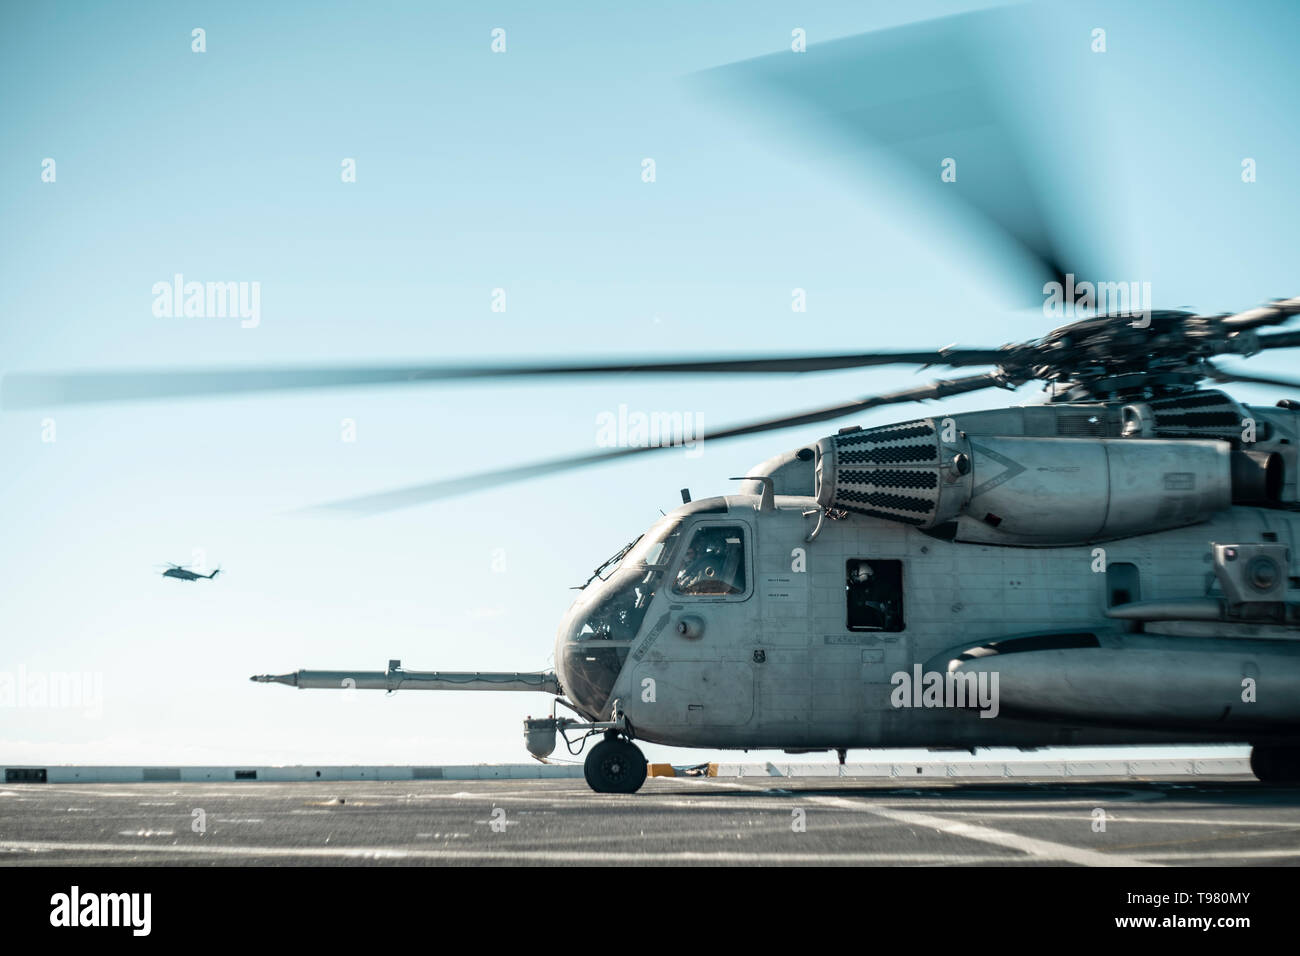 190511-M-HB658-0111 PACIFIC OCEAN (May 11, 2019) A U.S. Marine Corps CH-53E with Marine Medium Tiltrotor Squadron (VMM) 163 (Reinforced), 11th Marine Expeditionary Unit (MEU), sits on the flight deck of the San Antonio-class amphibious transport dock ship USS John P. Murtha (LPD 26). The Marines and Sailors of the 11th MEU are conducting routine operations as part of the Boxer Amphibious Ready Group. (U.S. Marine Corps photo by Staff Sgt. Donald Holbert) - Stock Image